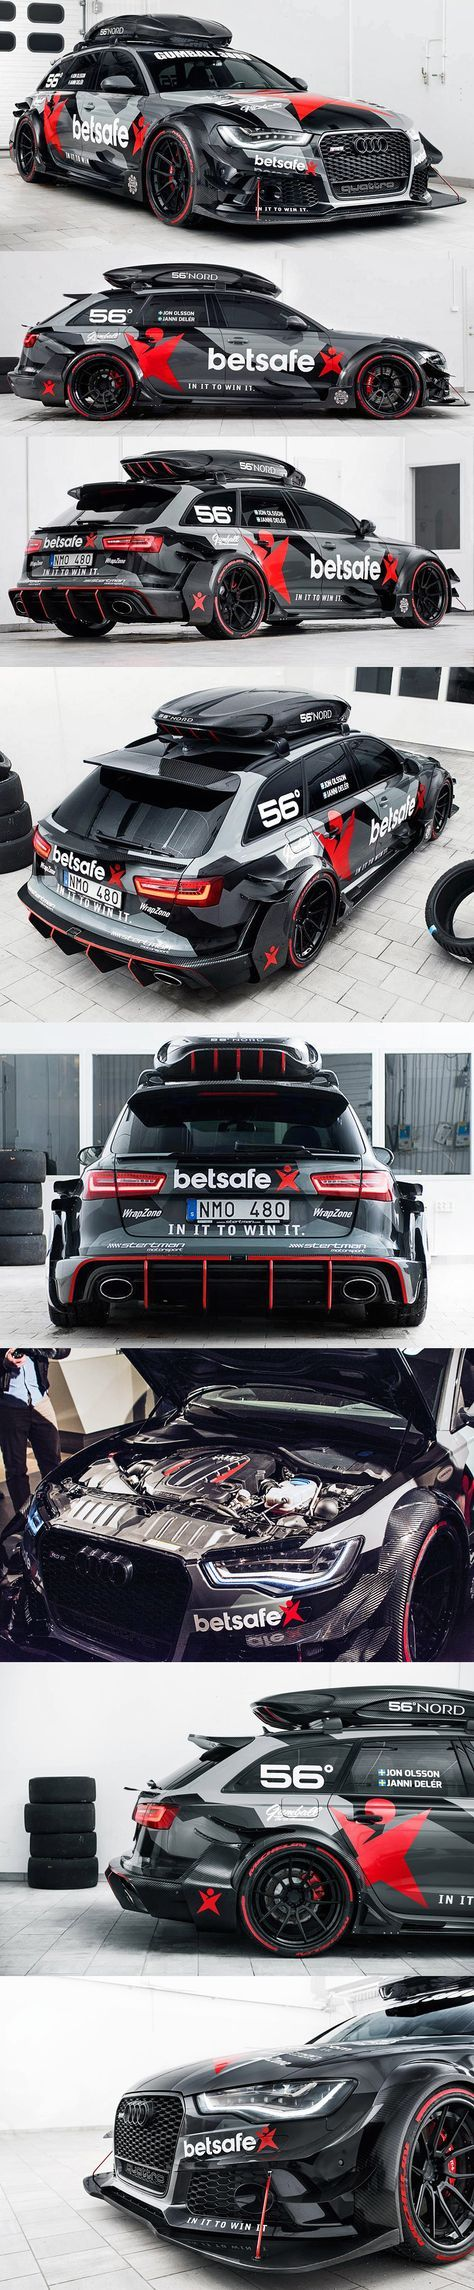 What you see here is latest #Audi #RS6 #DTMStertman with unrivalled insanity http://www.audienginesandgearboxes.co.uk/